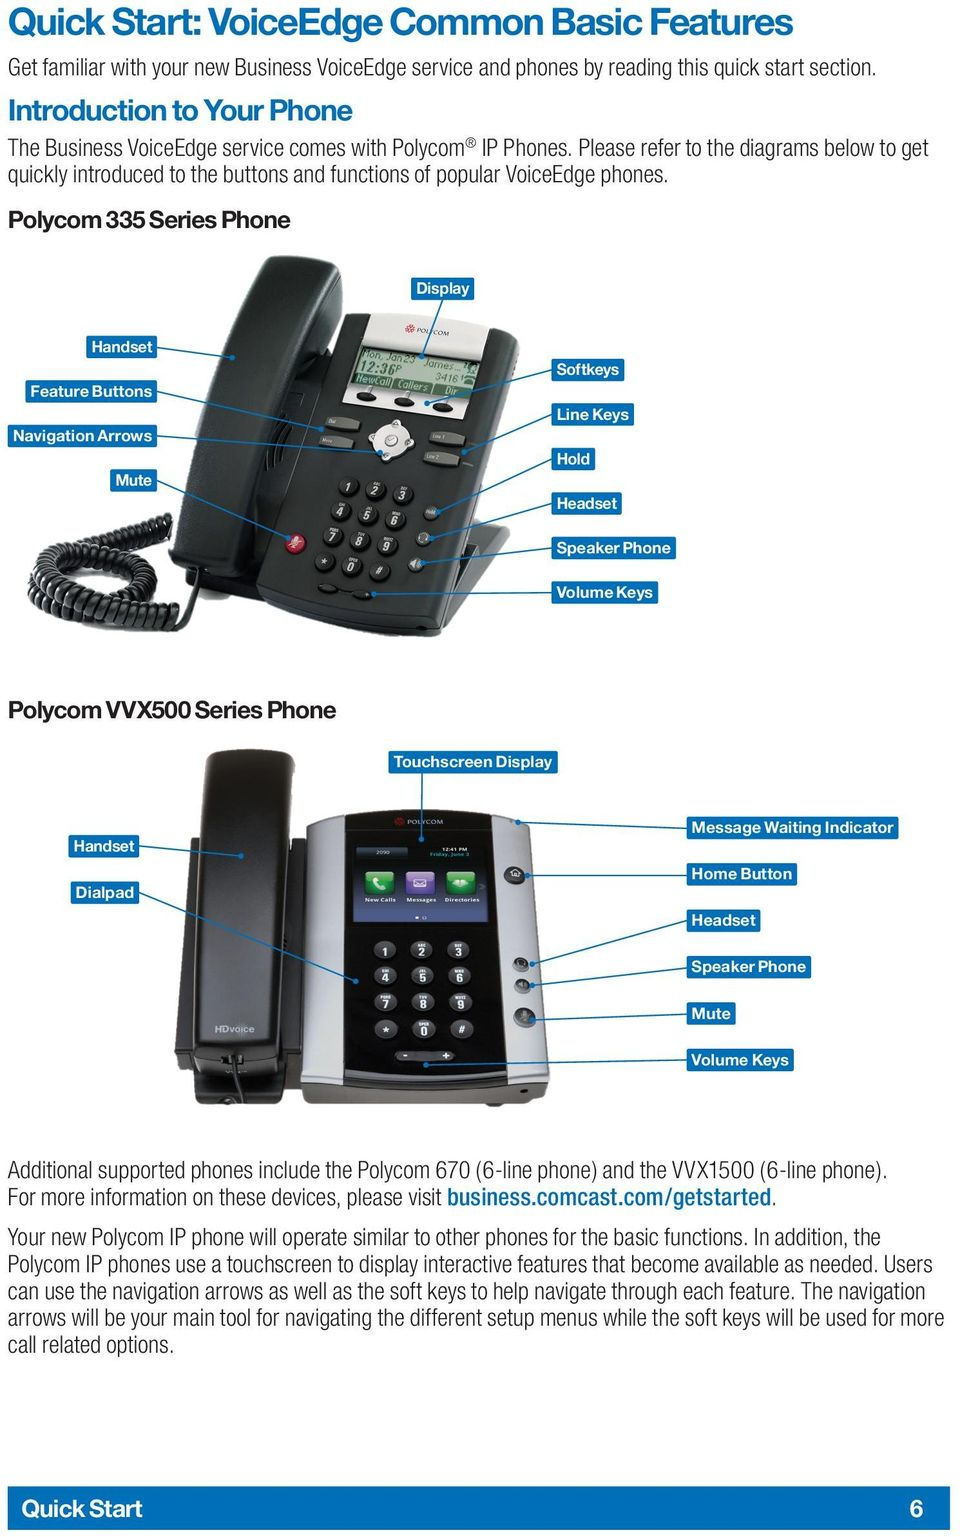 Please refer to the diagrams below to get quickly introduced to the buttons and functions of popular VoiceEdge phones.